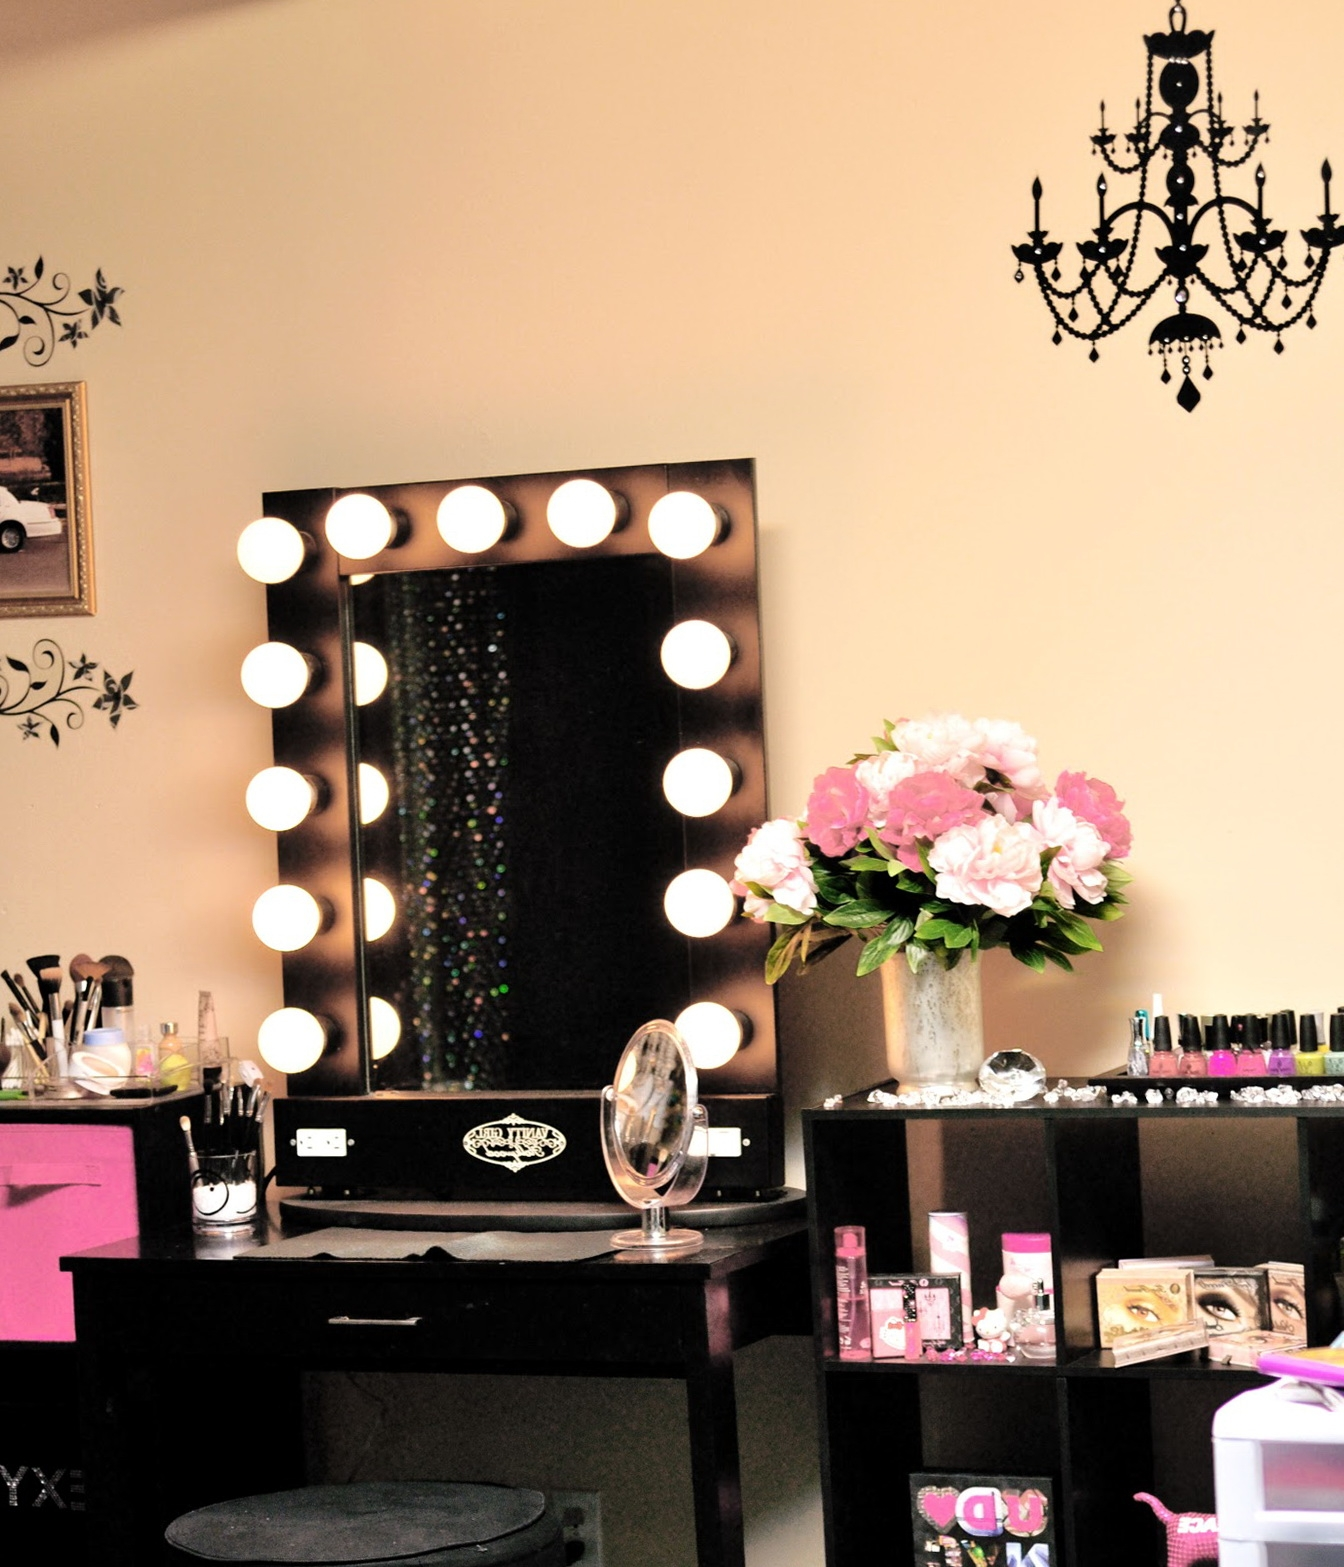 Makeup Vanity Table with Lighted Mirror | Makeup Vanity Lights | Mirrored Vanity Table